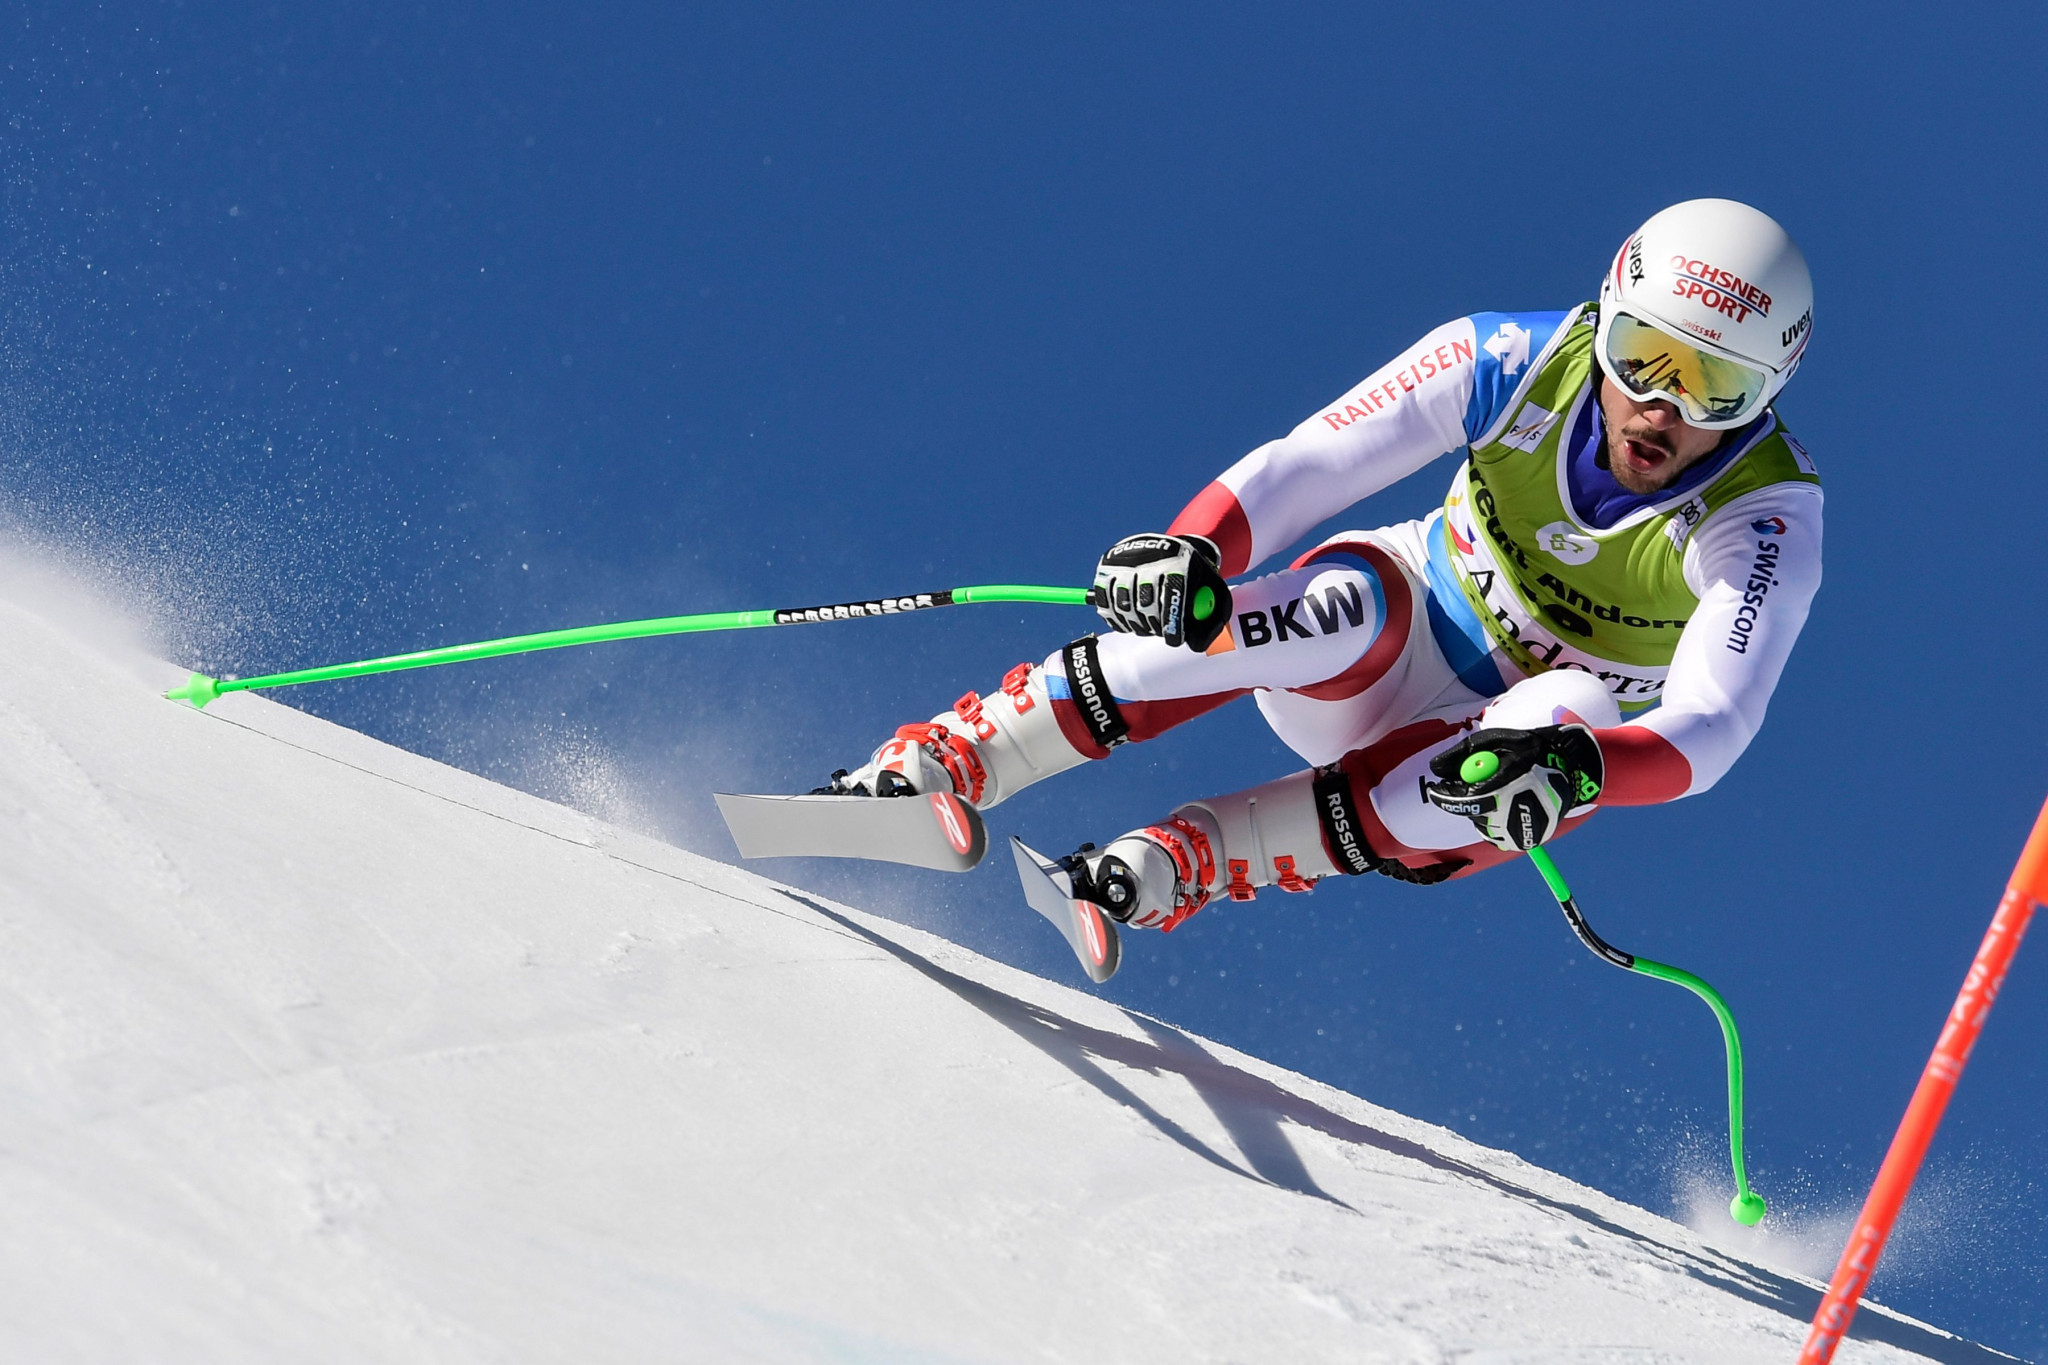 Carlo Janka was the fastest competitor in training for the downhill competition at Lake Louise ©Getty Images